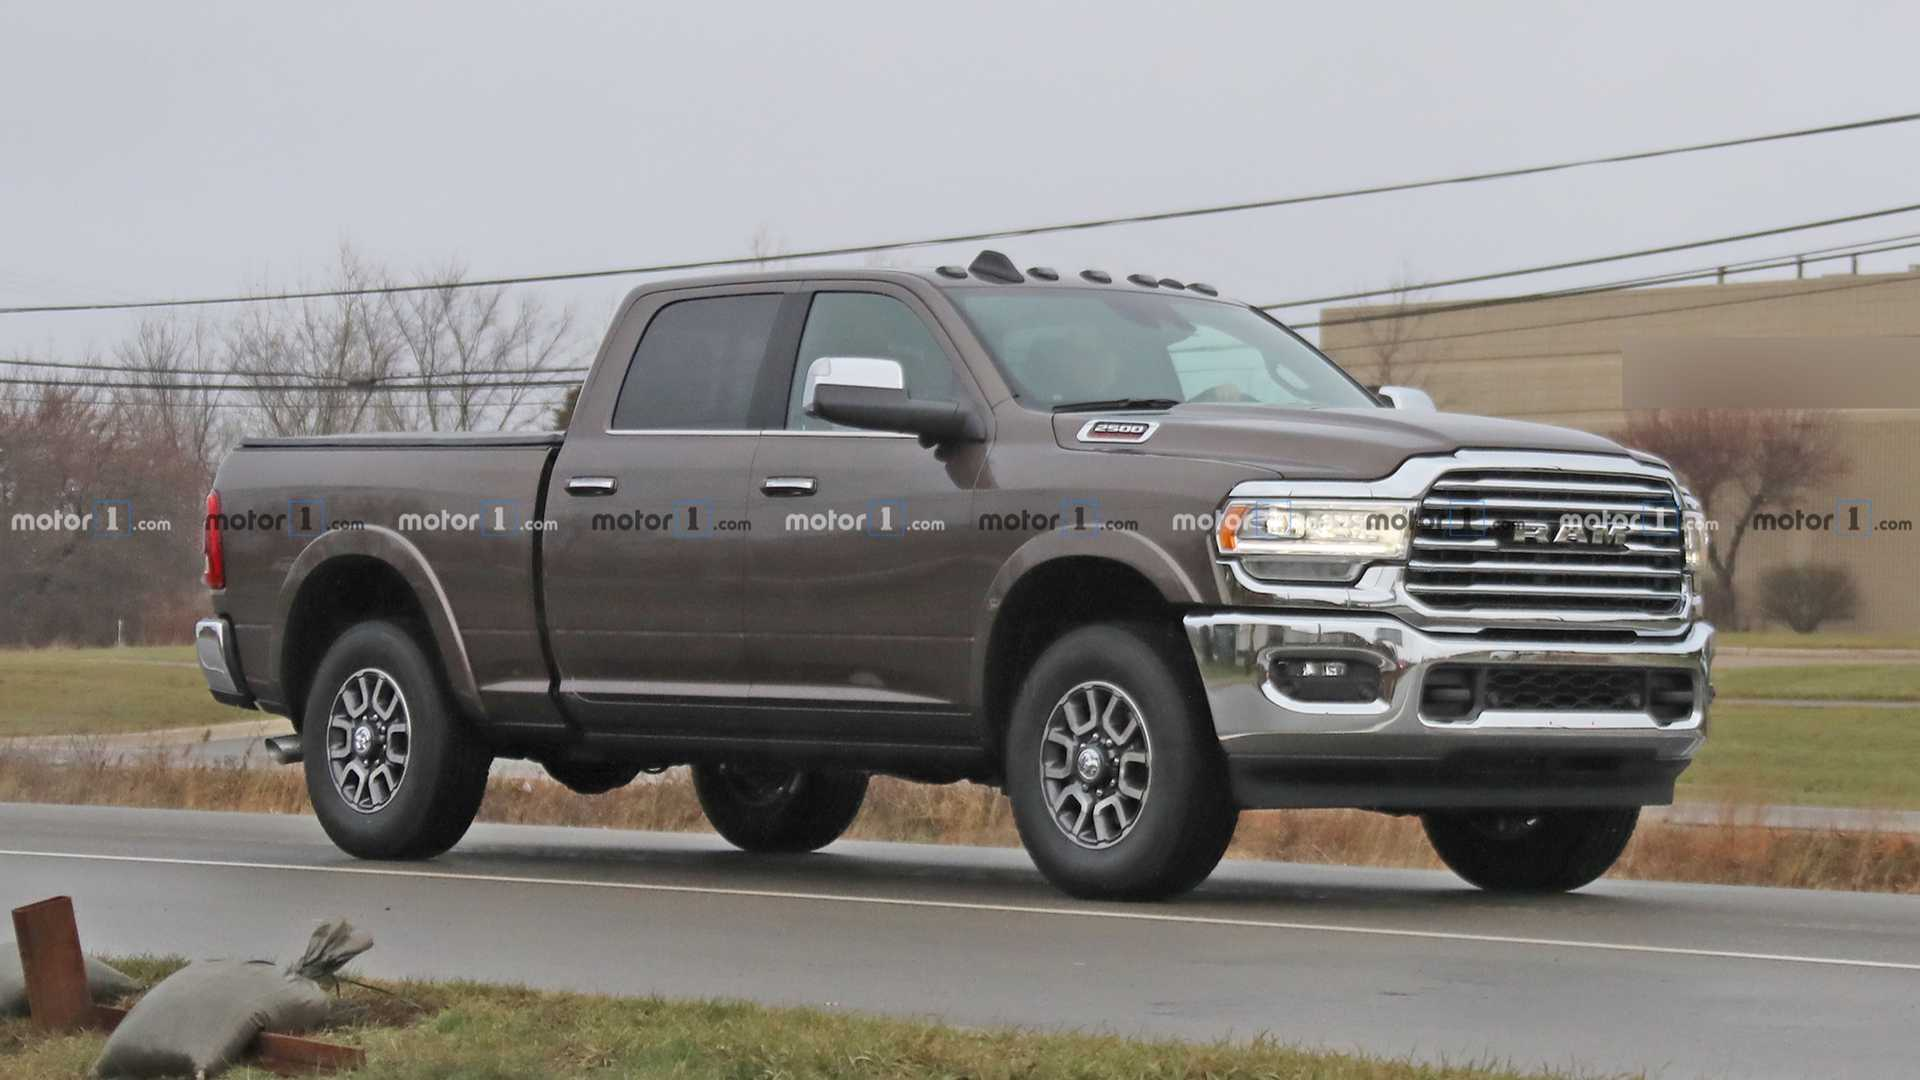 97 The 2020 Dodge Ram Pickup Research New